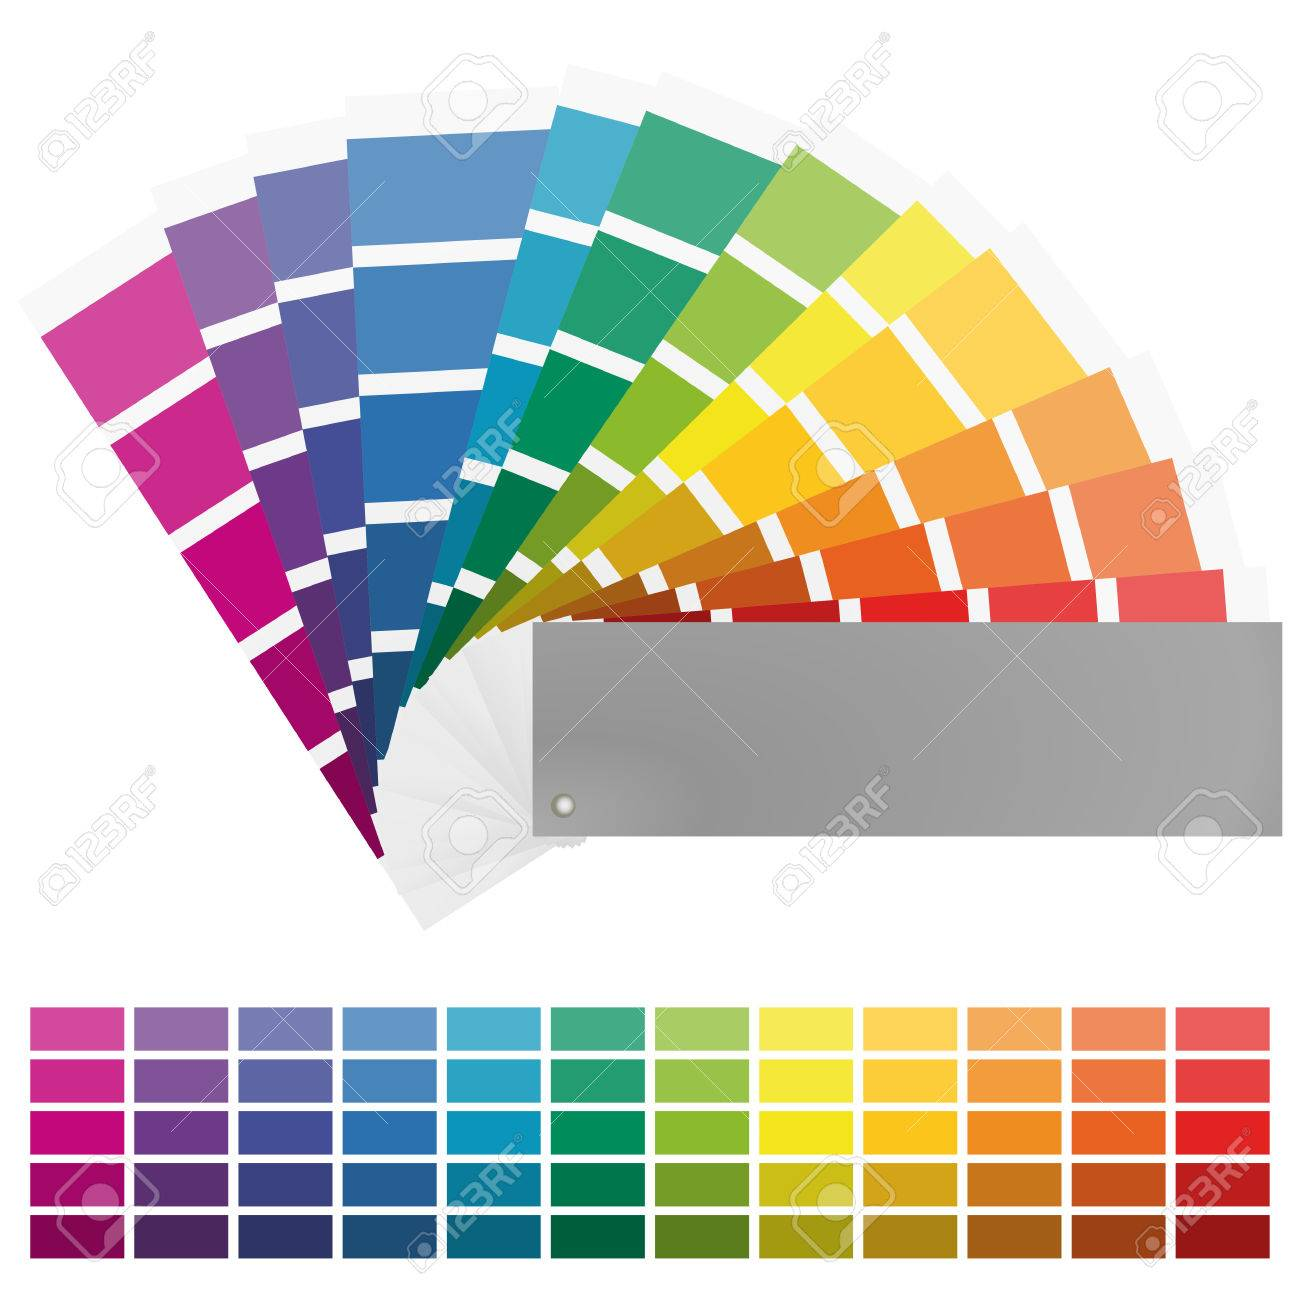 Illustration Of Printing Color Fan With Different Colors In Gradations Stock Vector